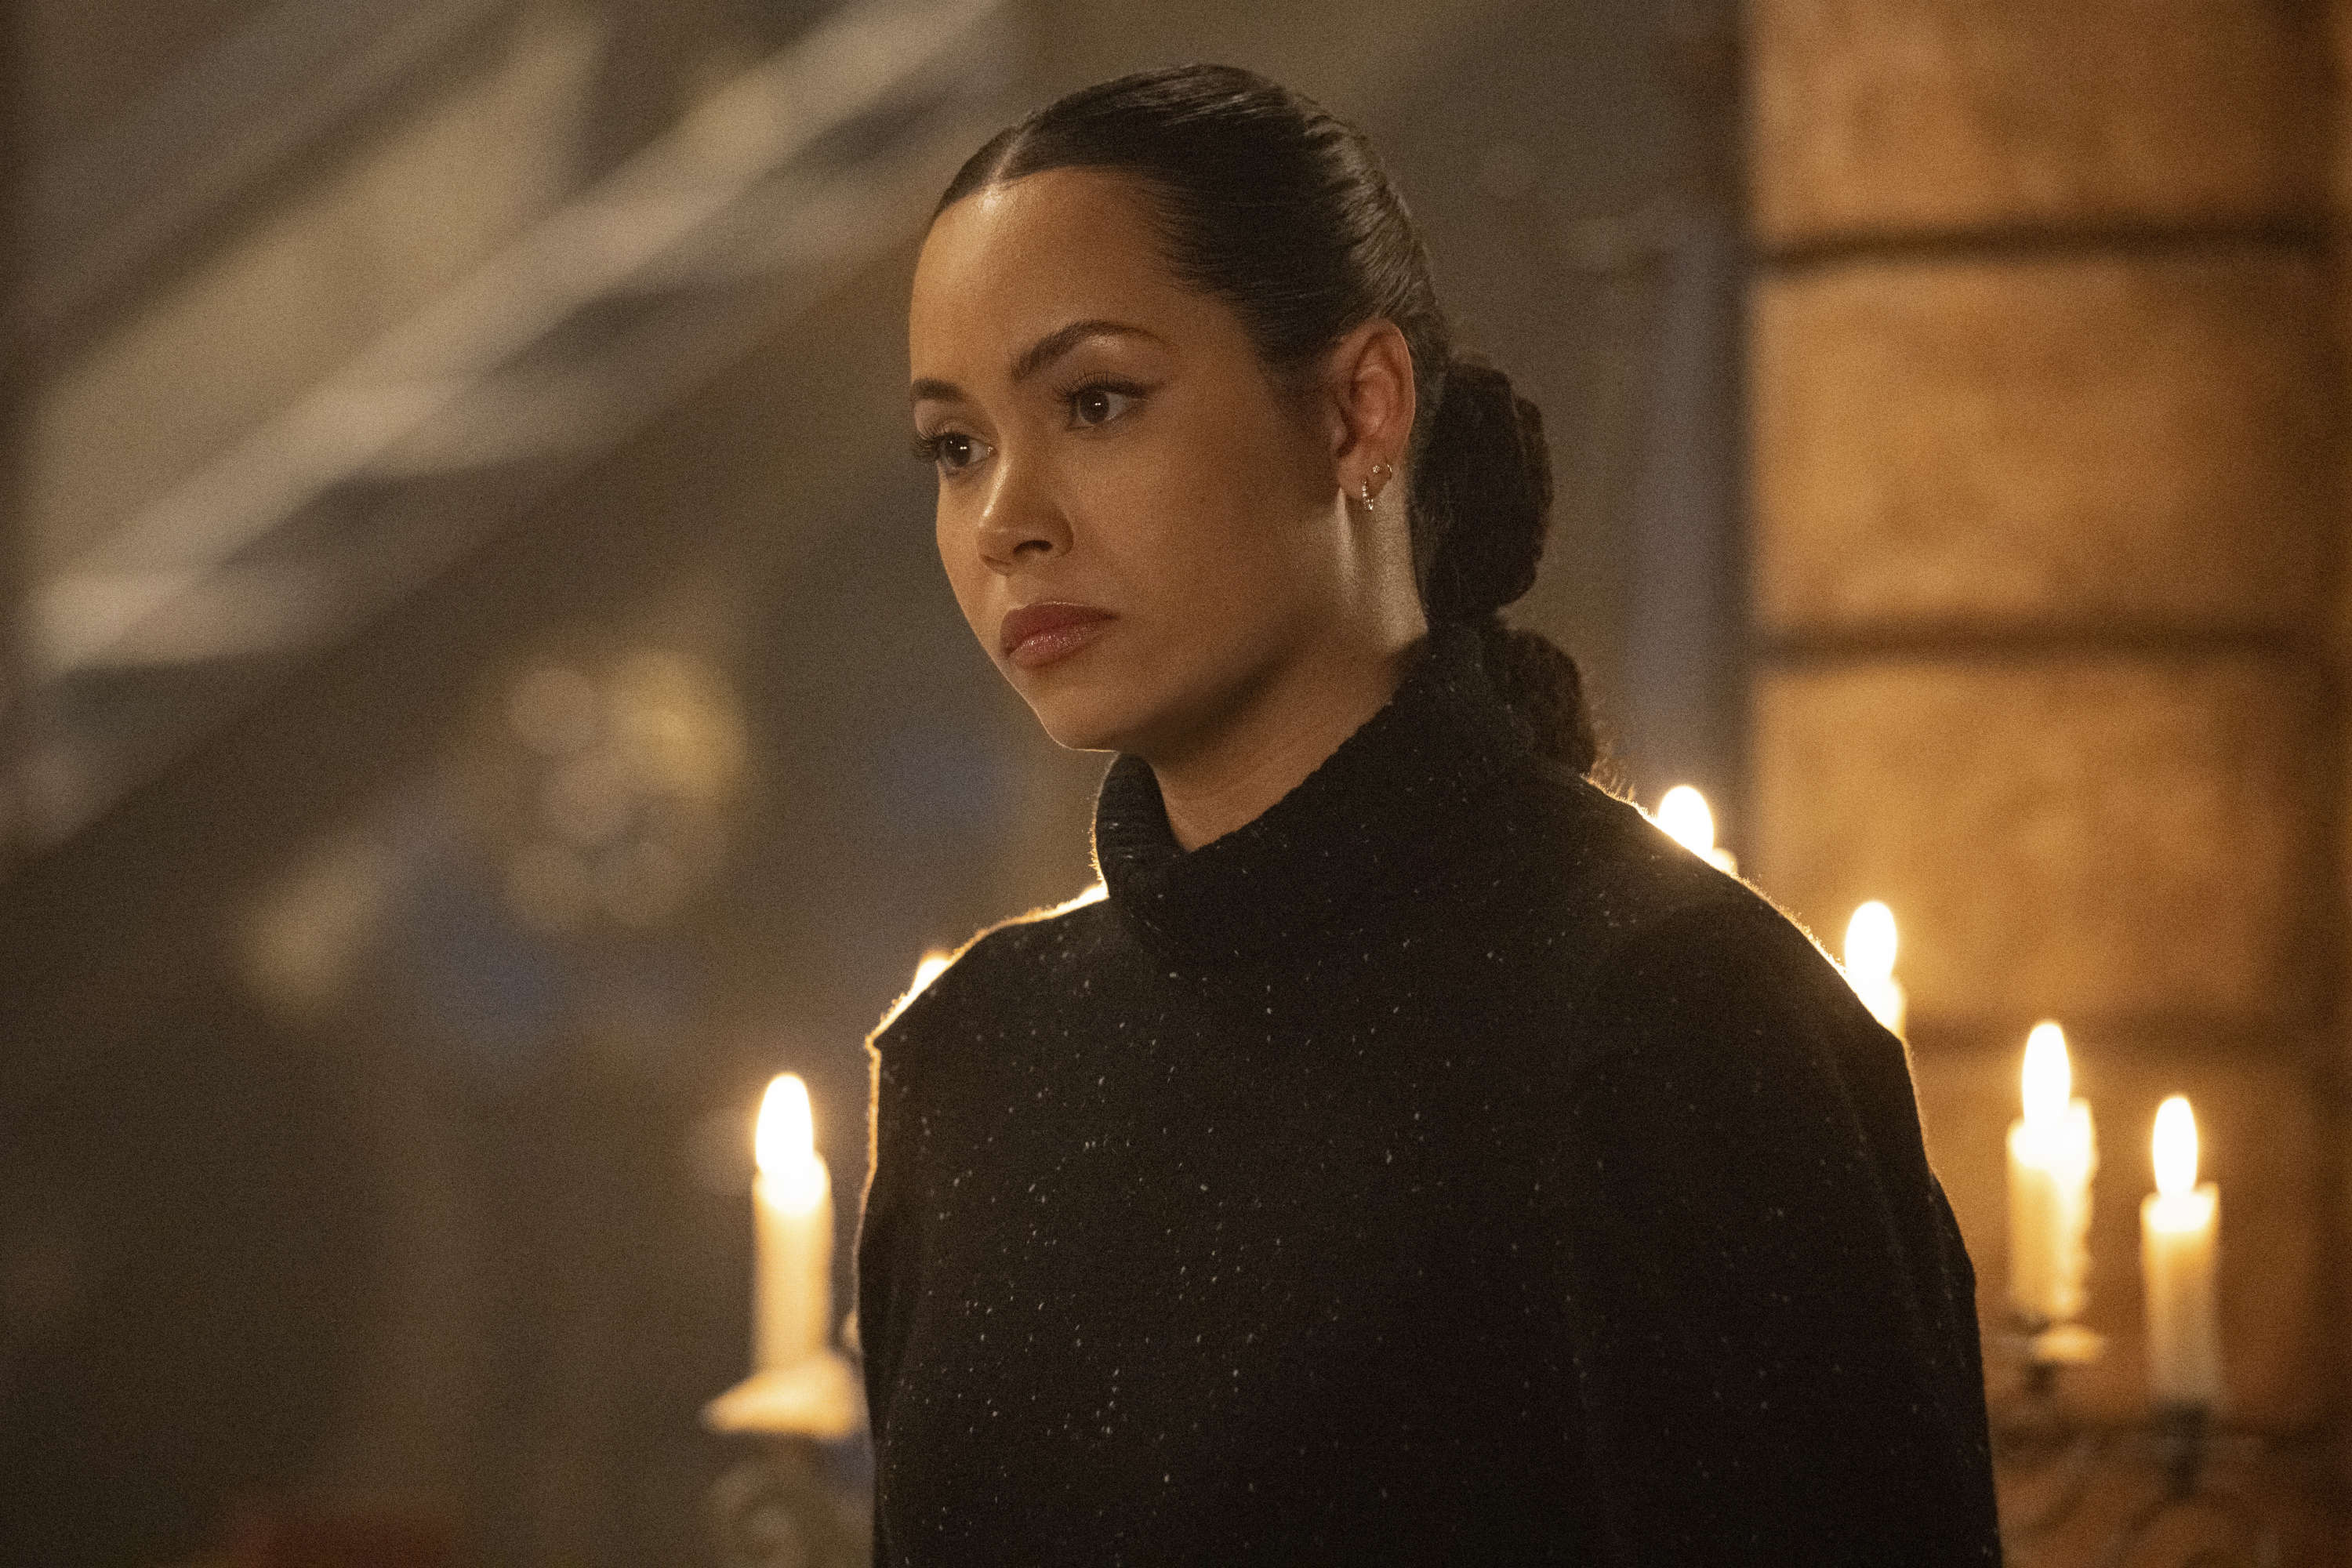 Original Charmed star Madeleine Mantock makes 'difficult decision' to leave The CW series after Season 3